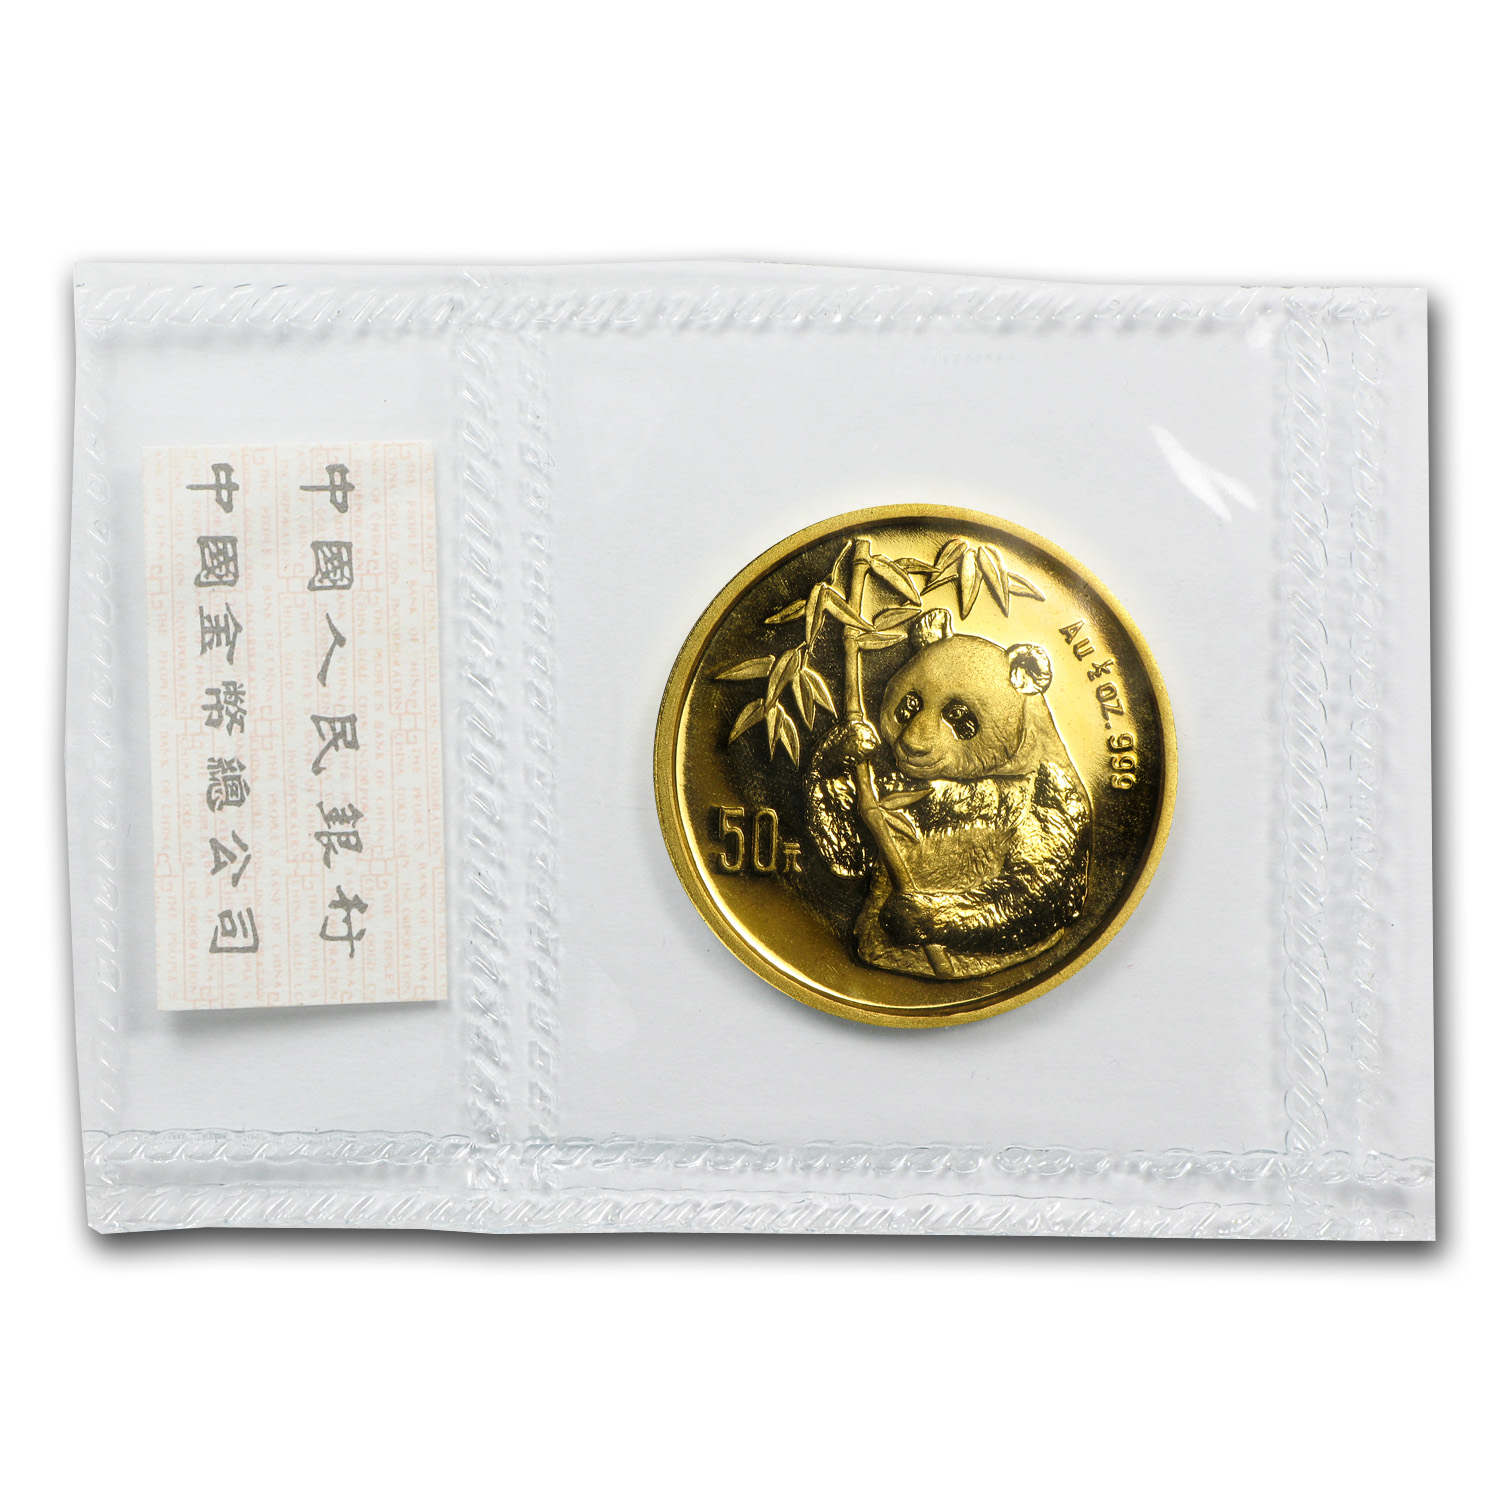 1995 China 1/2 oz Gold Panda Large Date BU (Sealed)